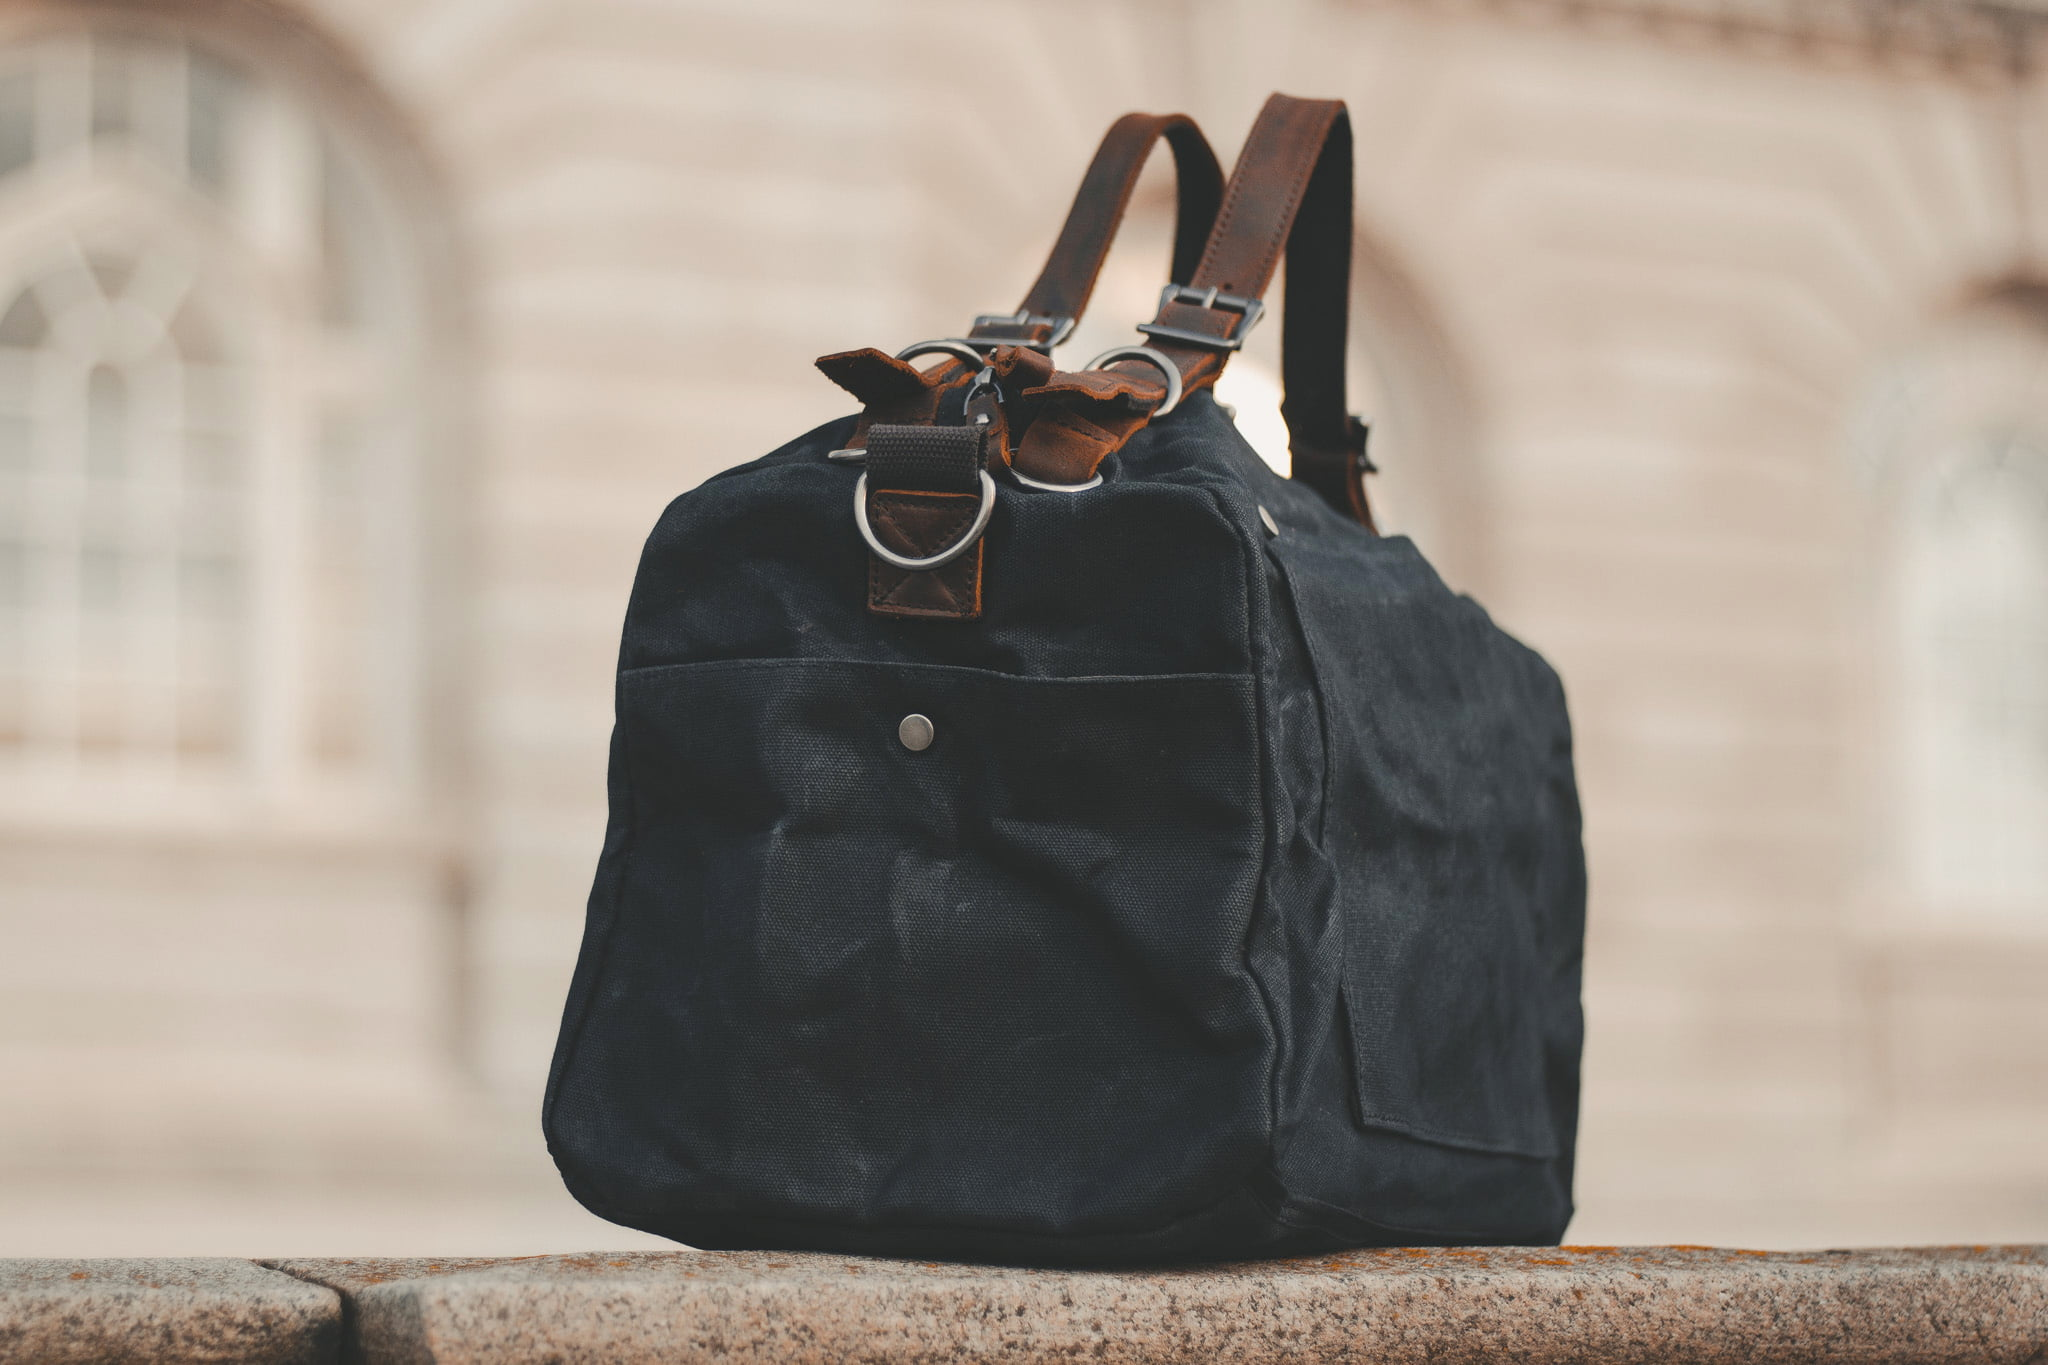 Waxed Cotton Canvas and Leather Duffle Bag Weekender Holdall - Menswear Denim Rugged Style Outfit - The Harkbridge in Graphite by Oldfield